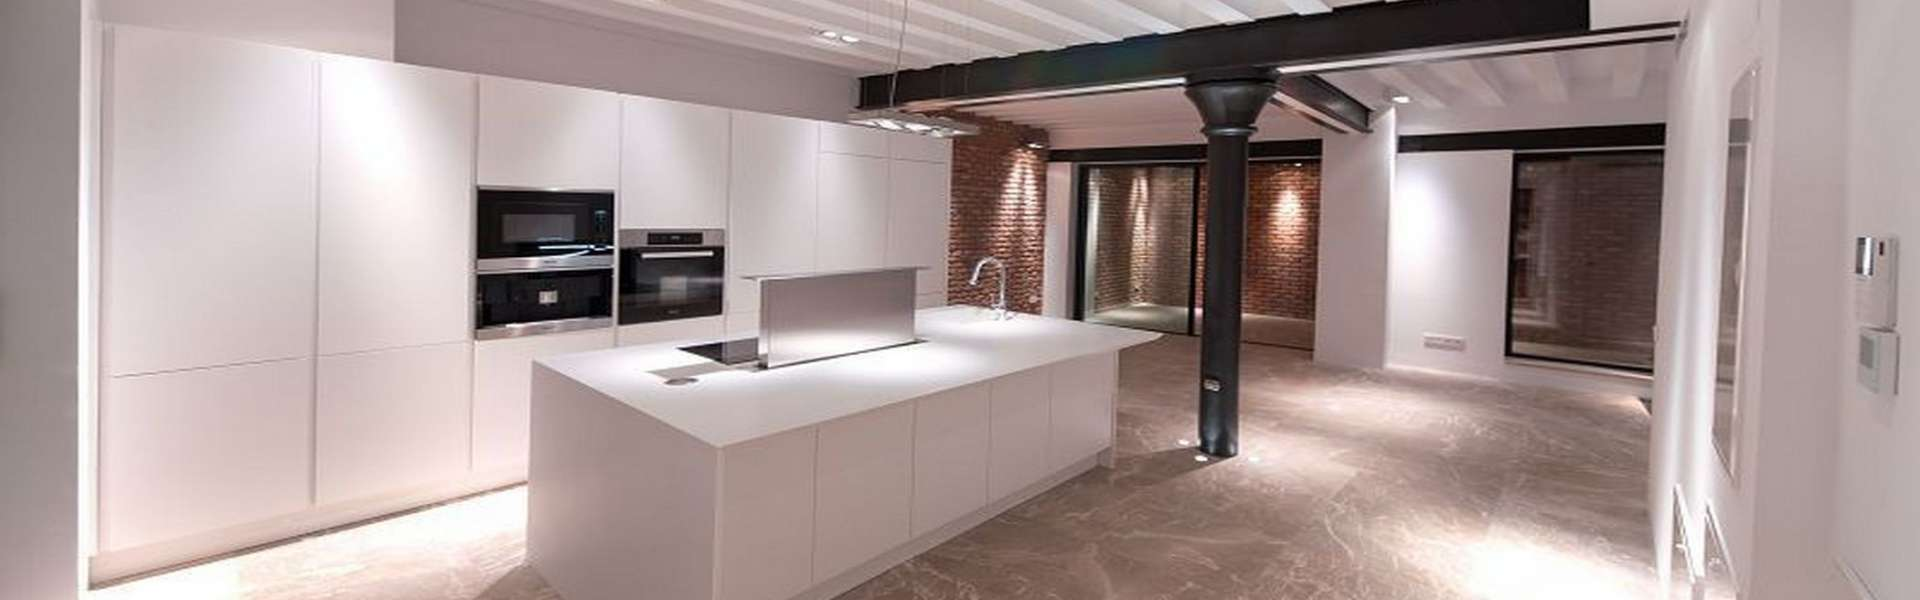 Palma/Old town - Apartment with loft character